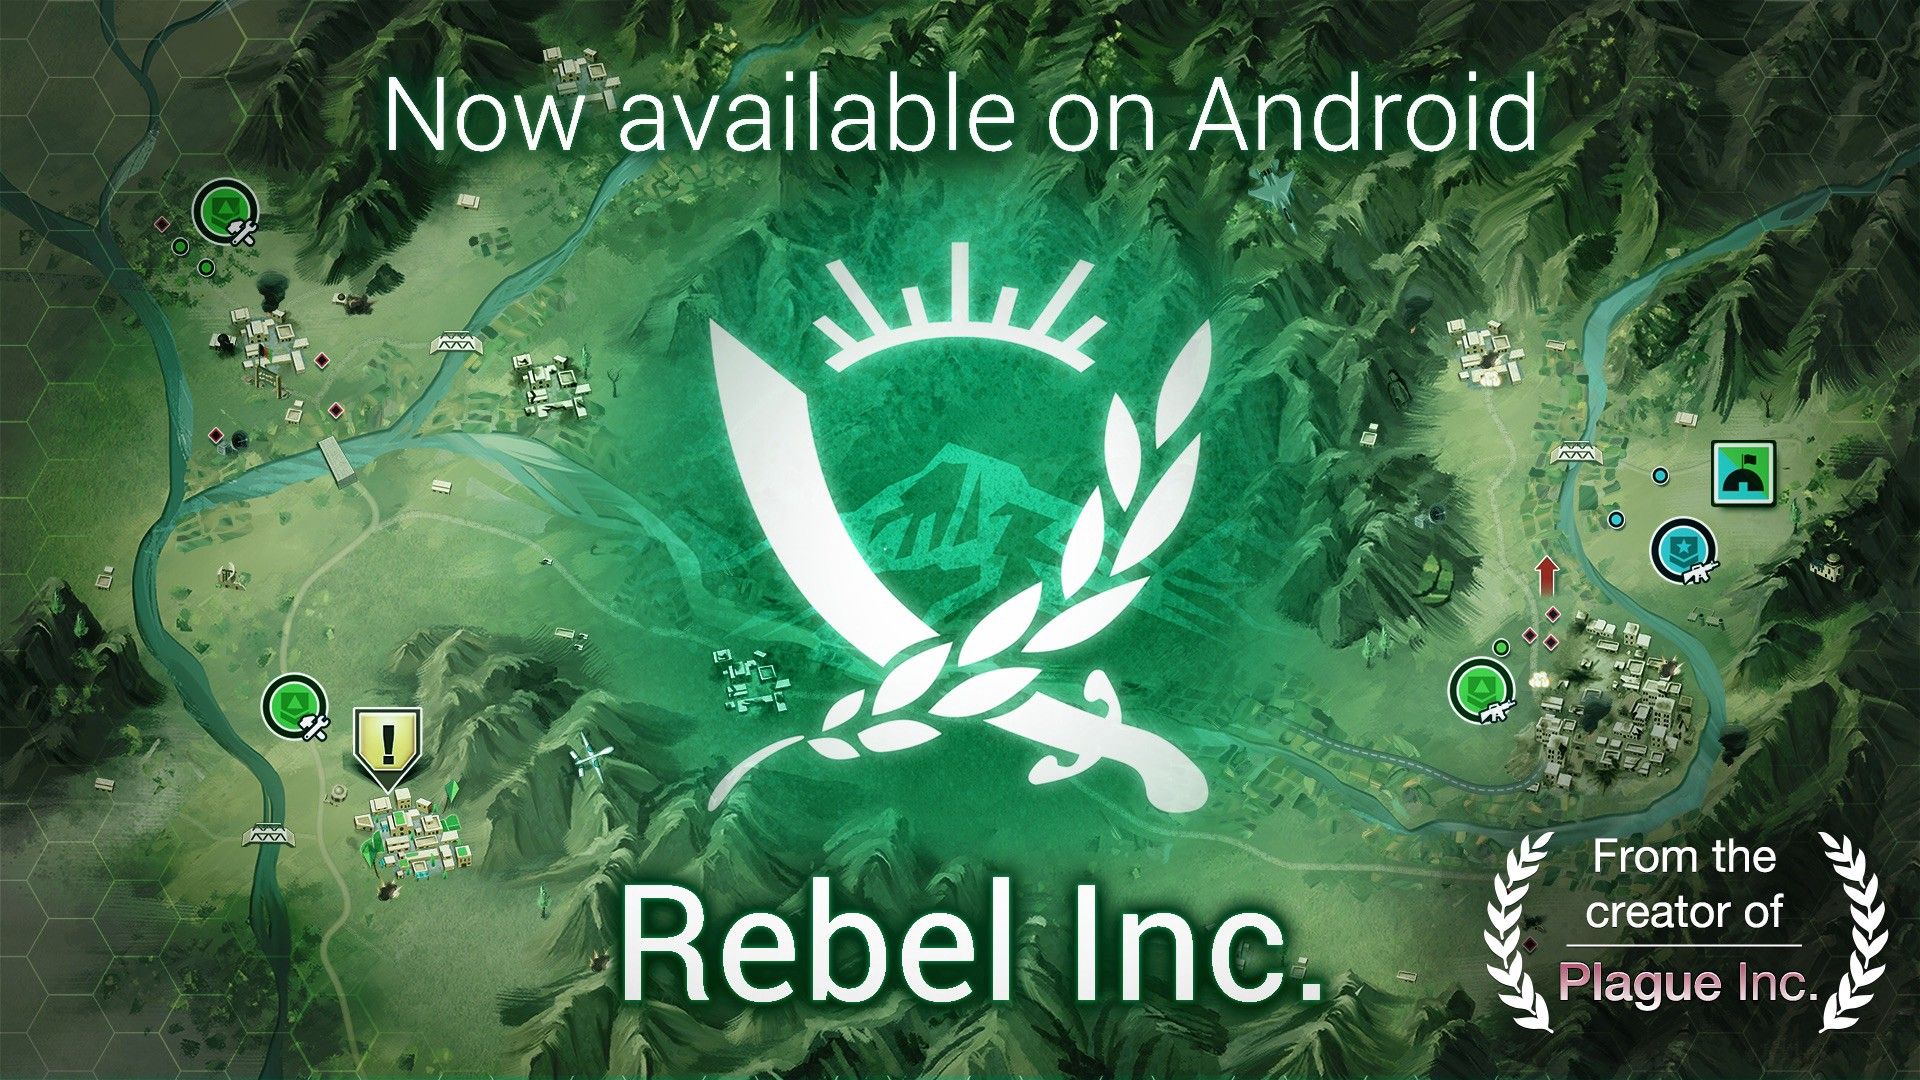 Lessons in Analytics From Mobile Gaming—Rebel, Inc